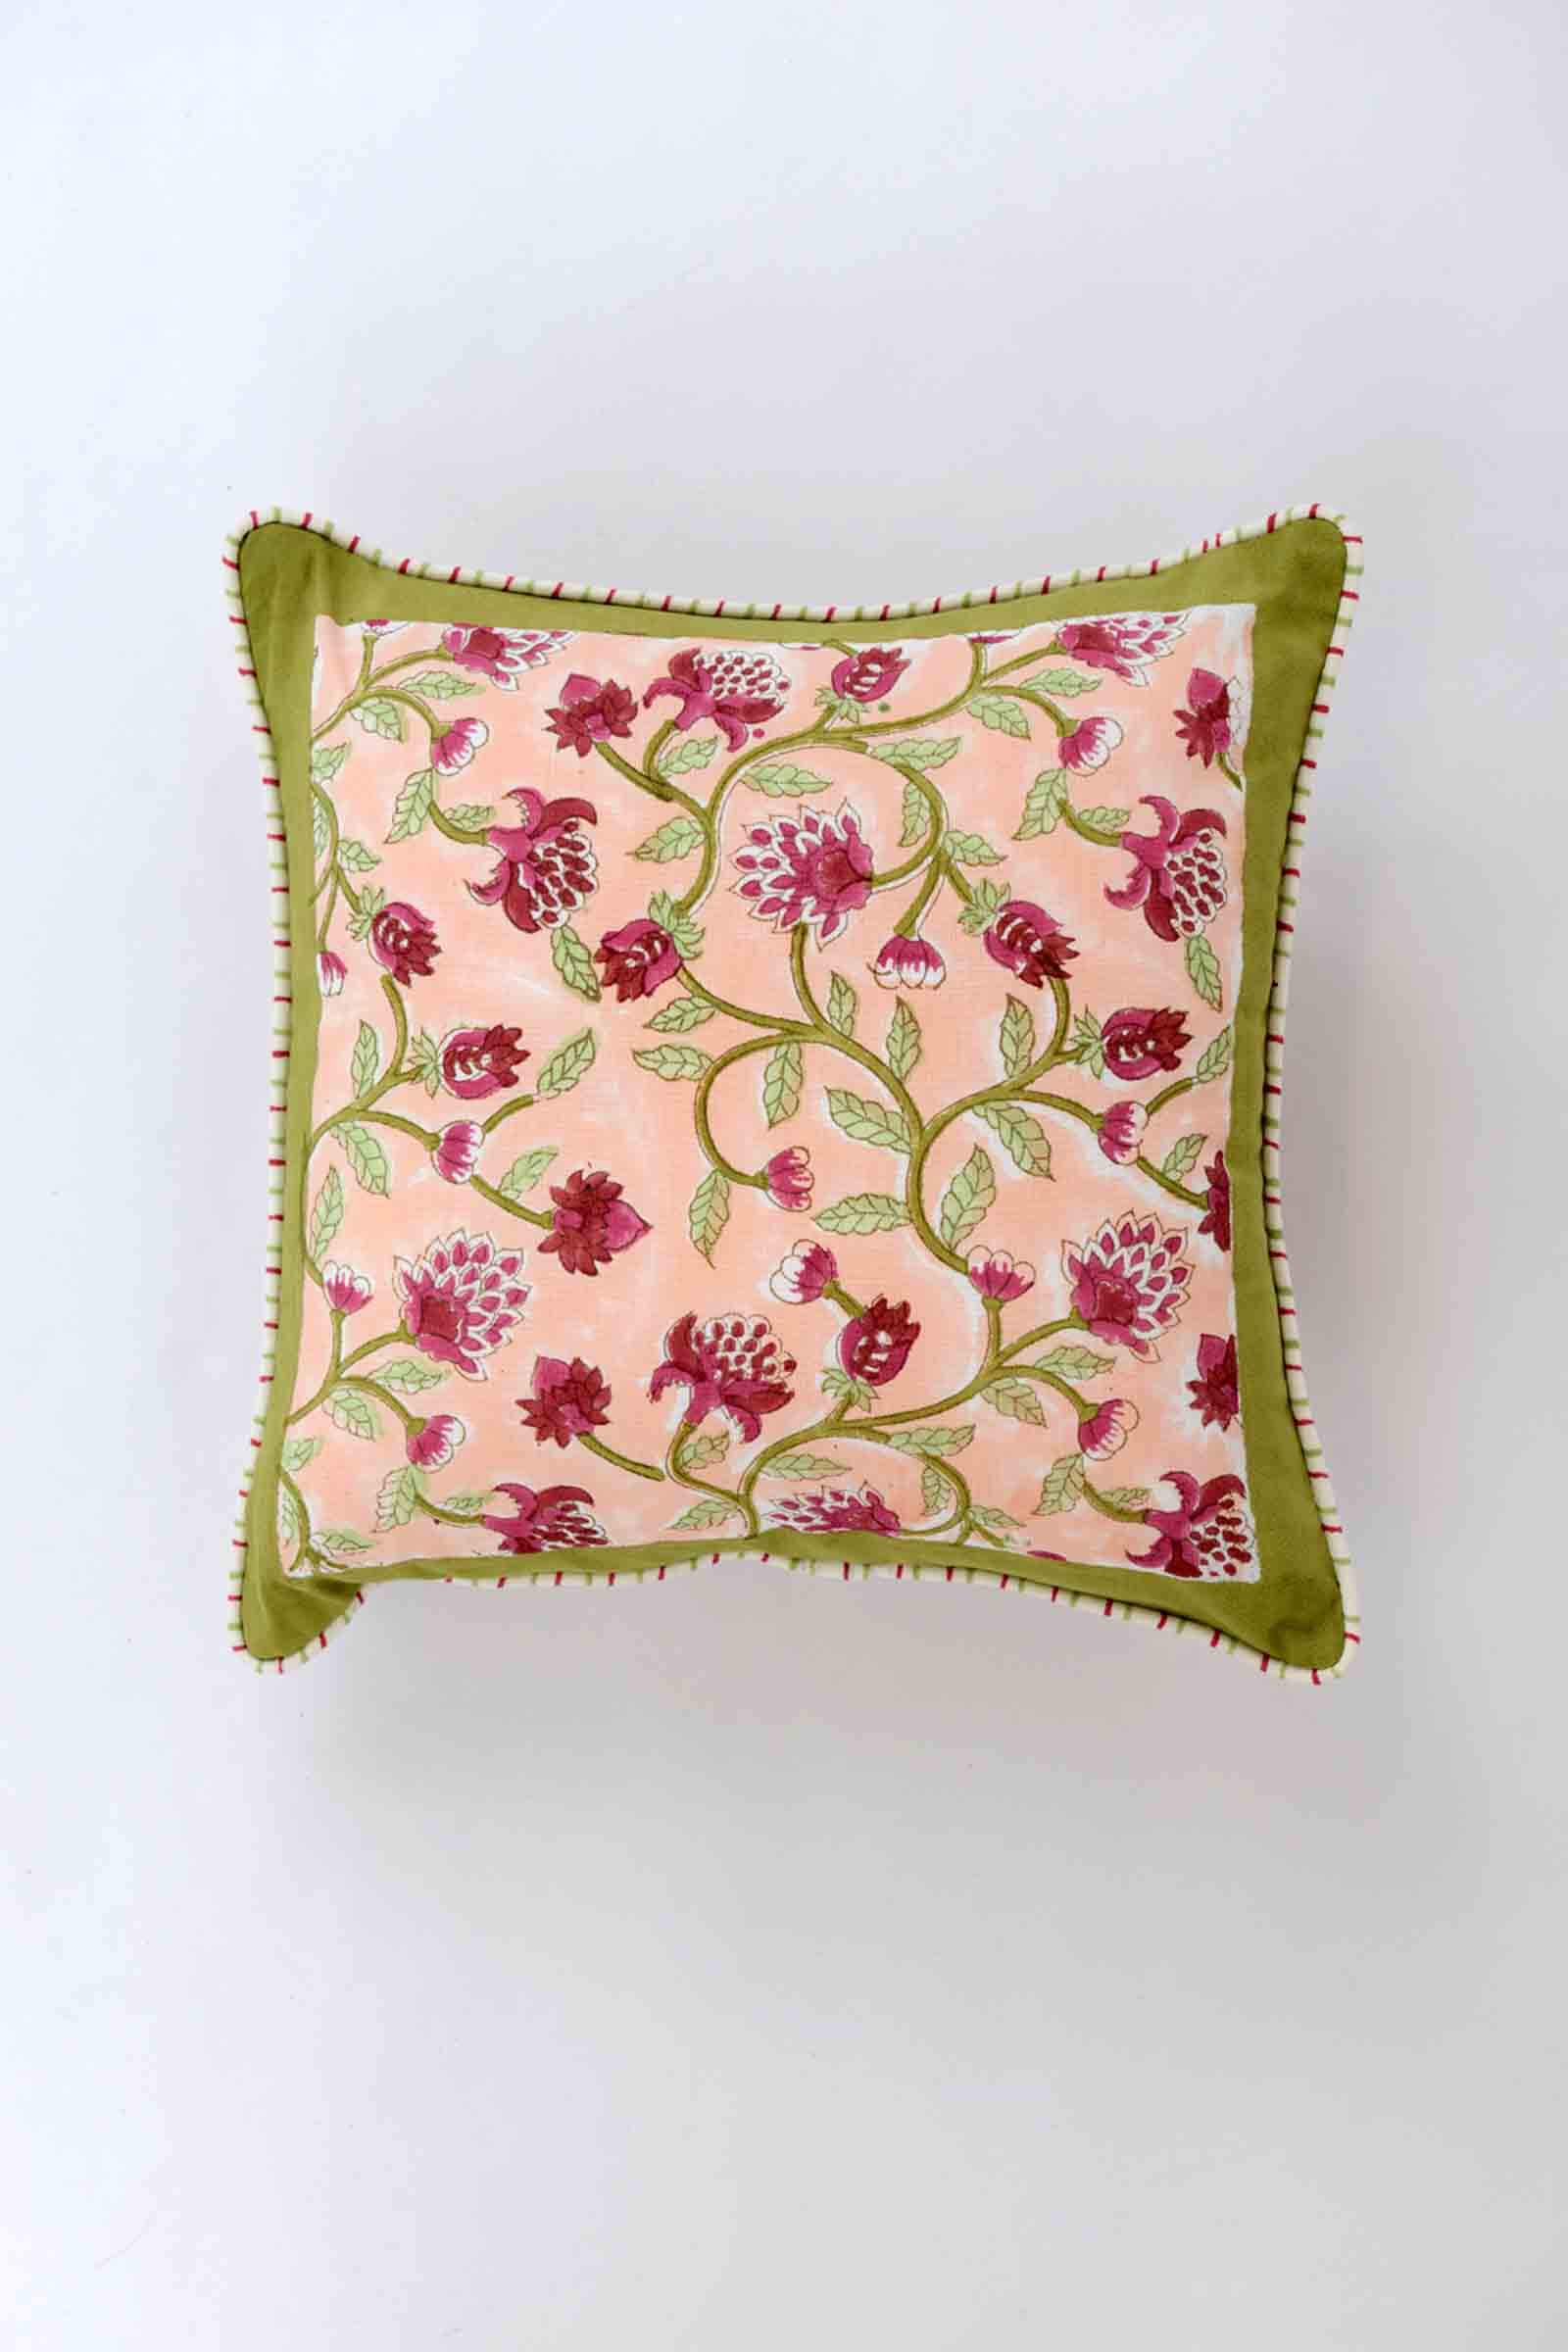 Poetic Summer 12*12 Cushion Cover